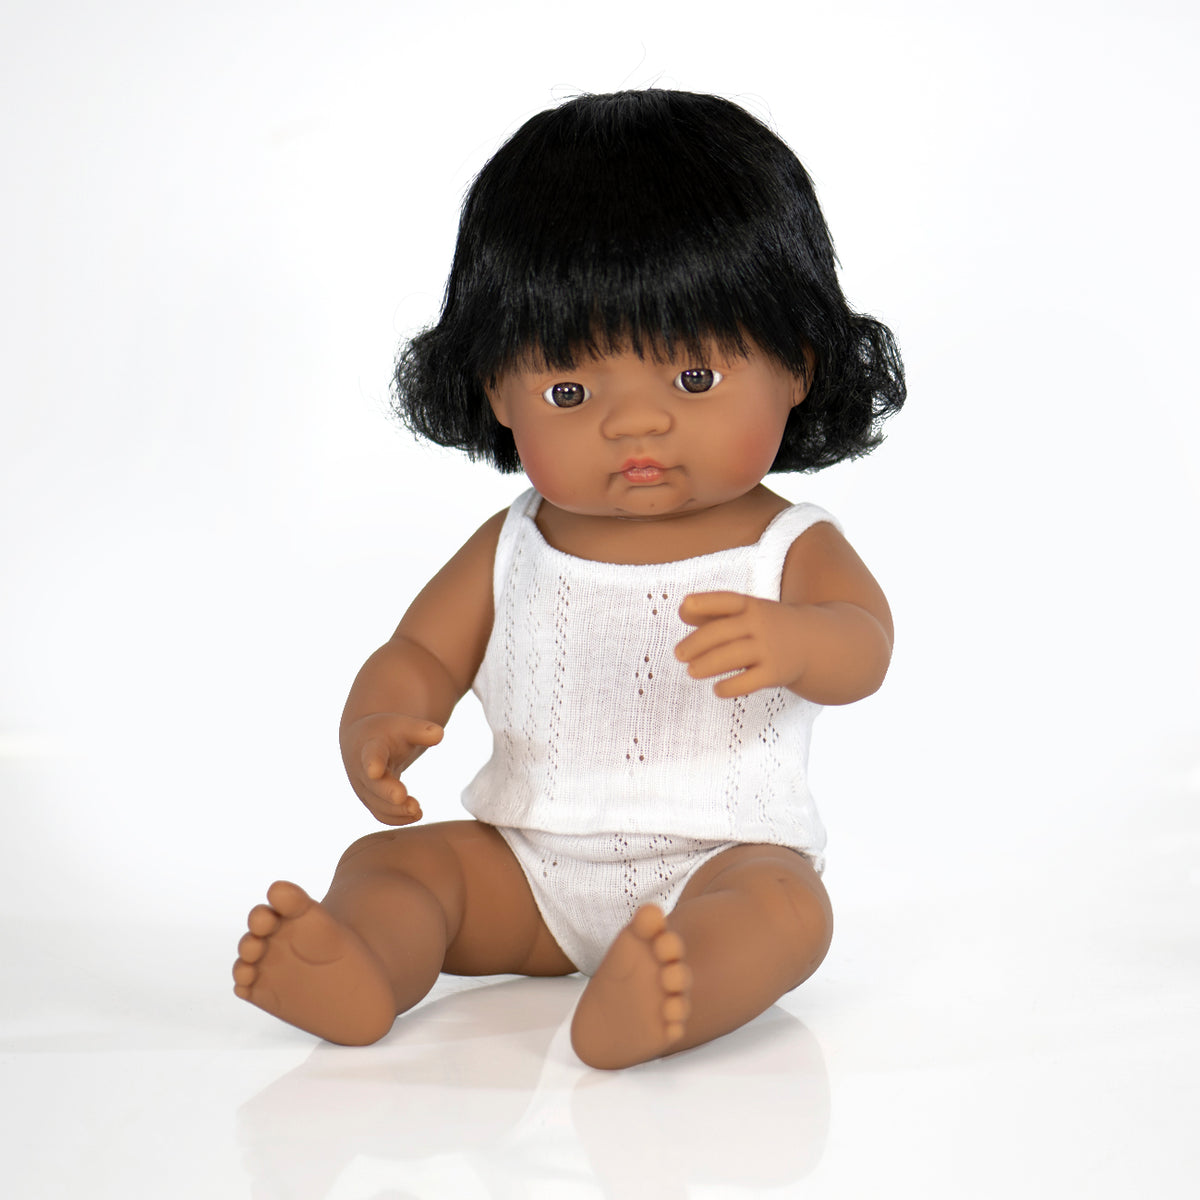 Anatomically Correct Doll | 38cm - Hispanic Girl